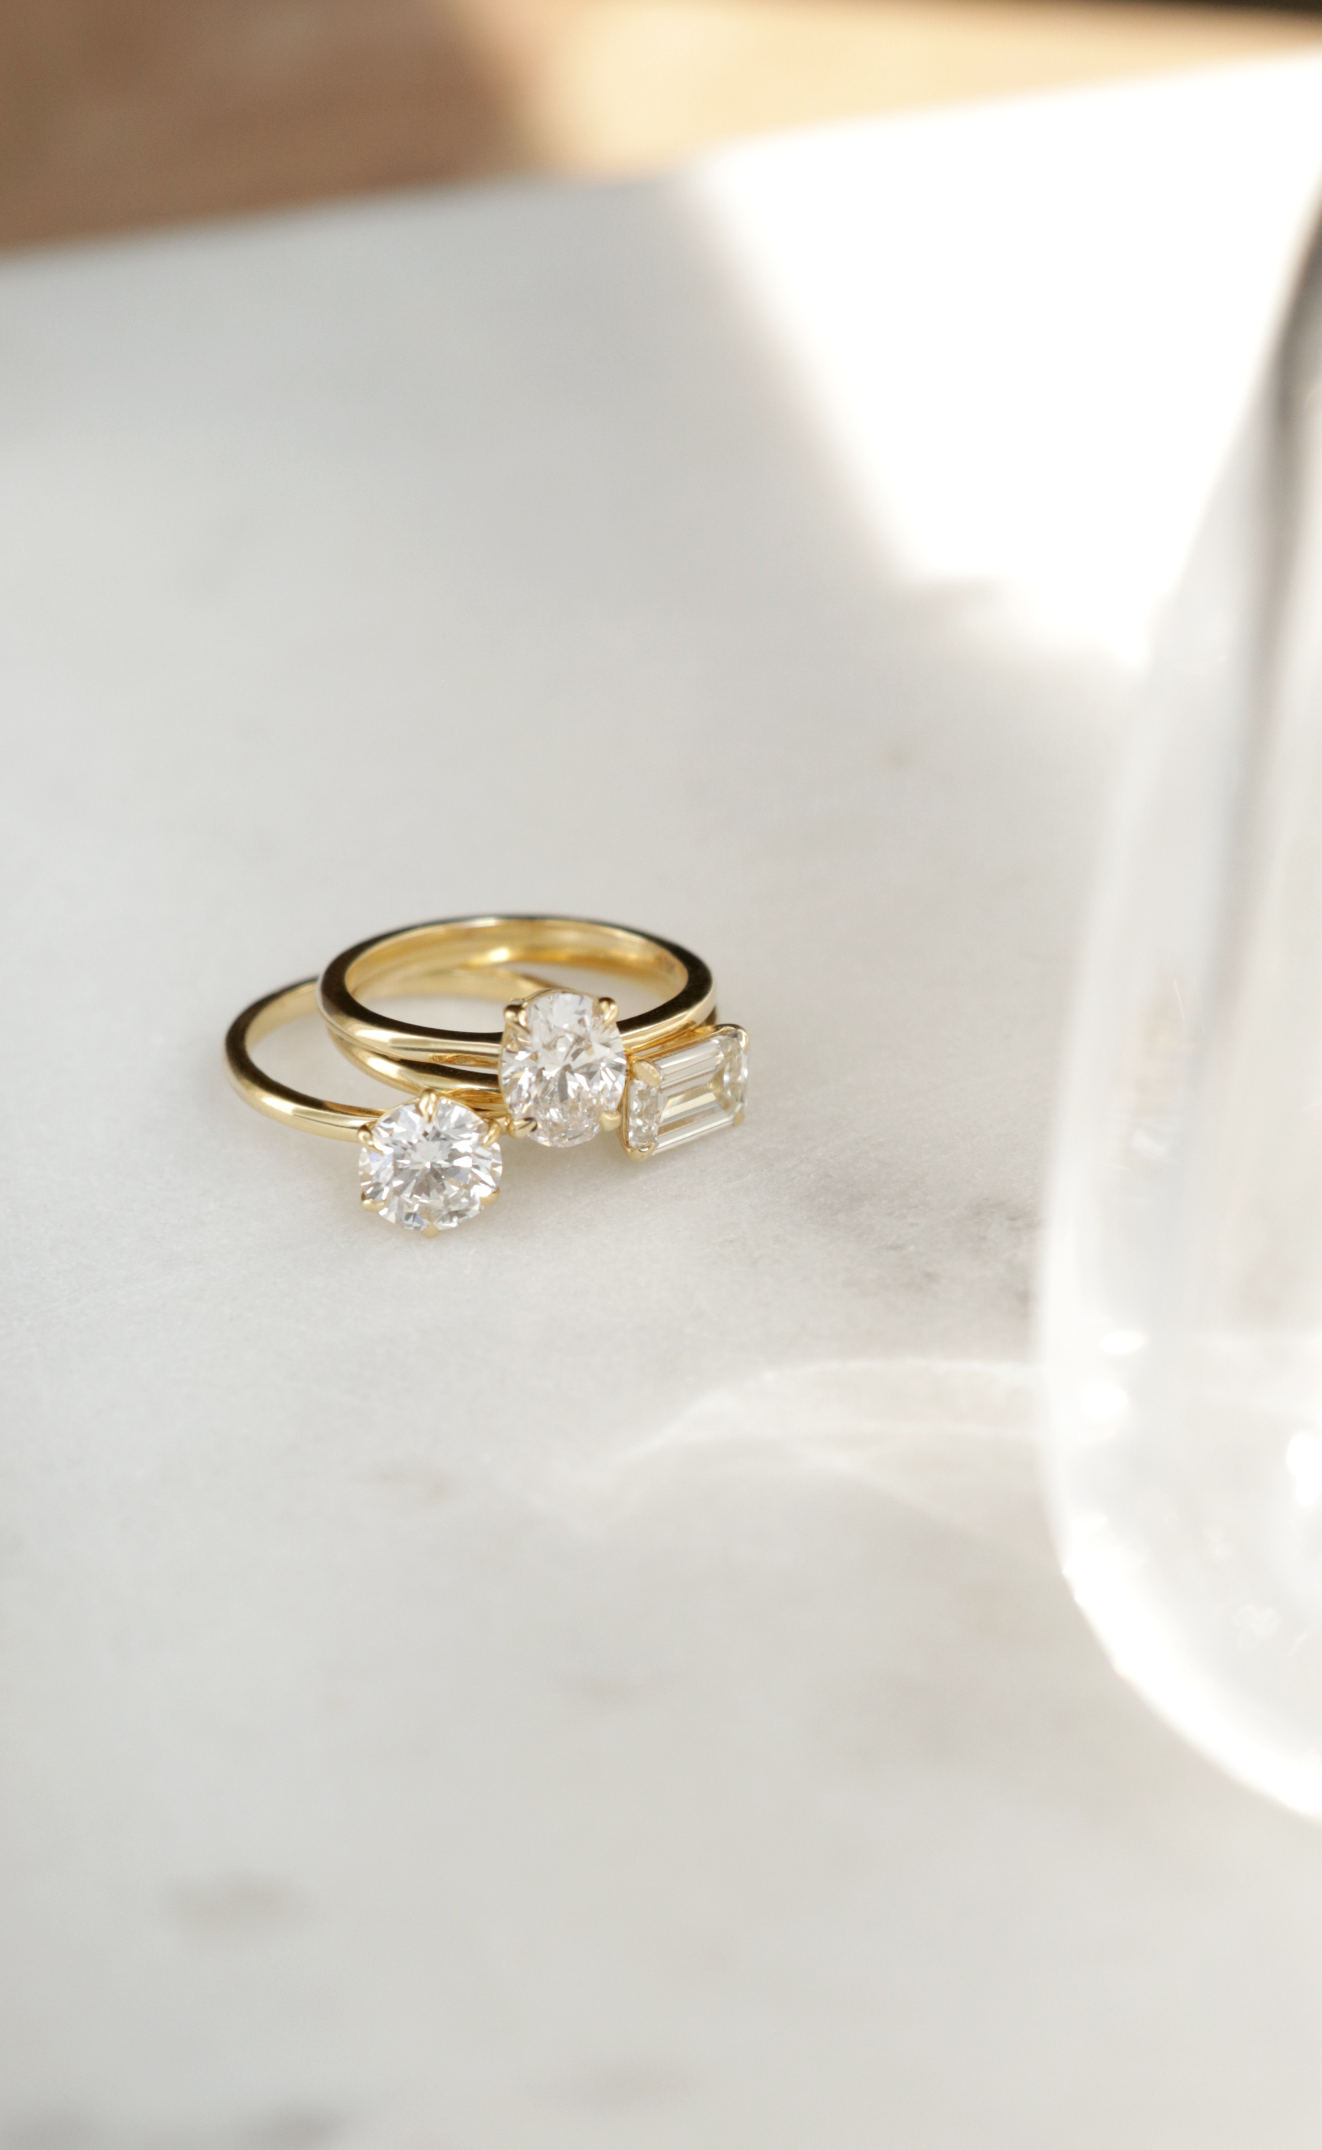 engagement ethicalrings aster free find sustainable featuring upscale false gold conflict brilliant diamond ethical earth where subsampling in white to cut diamonds wedding with bridal rings an and fairtrade ring scale article asscher crop